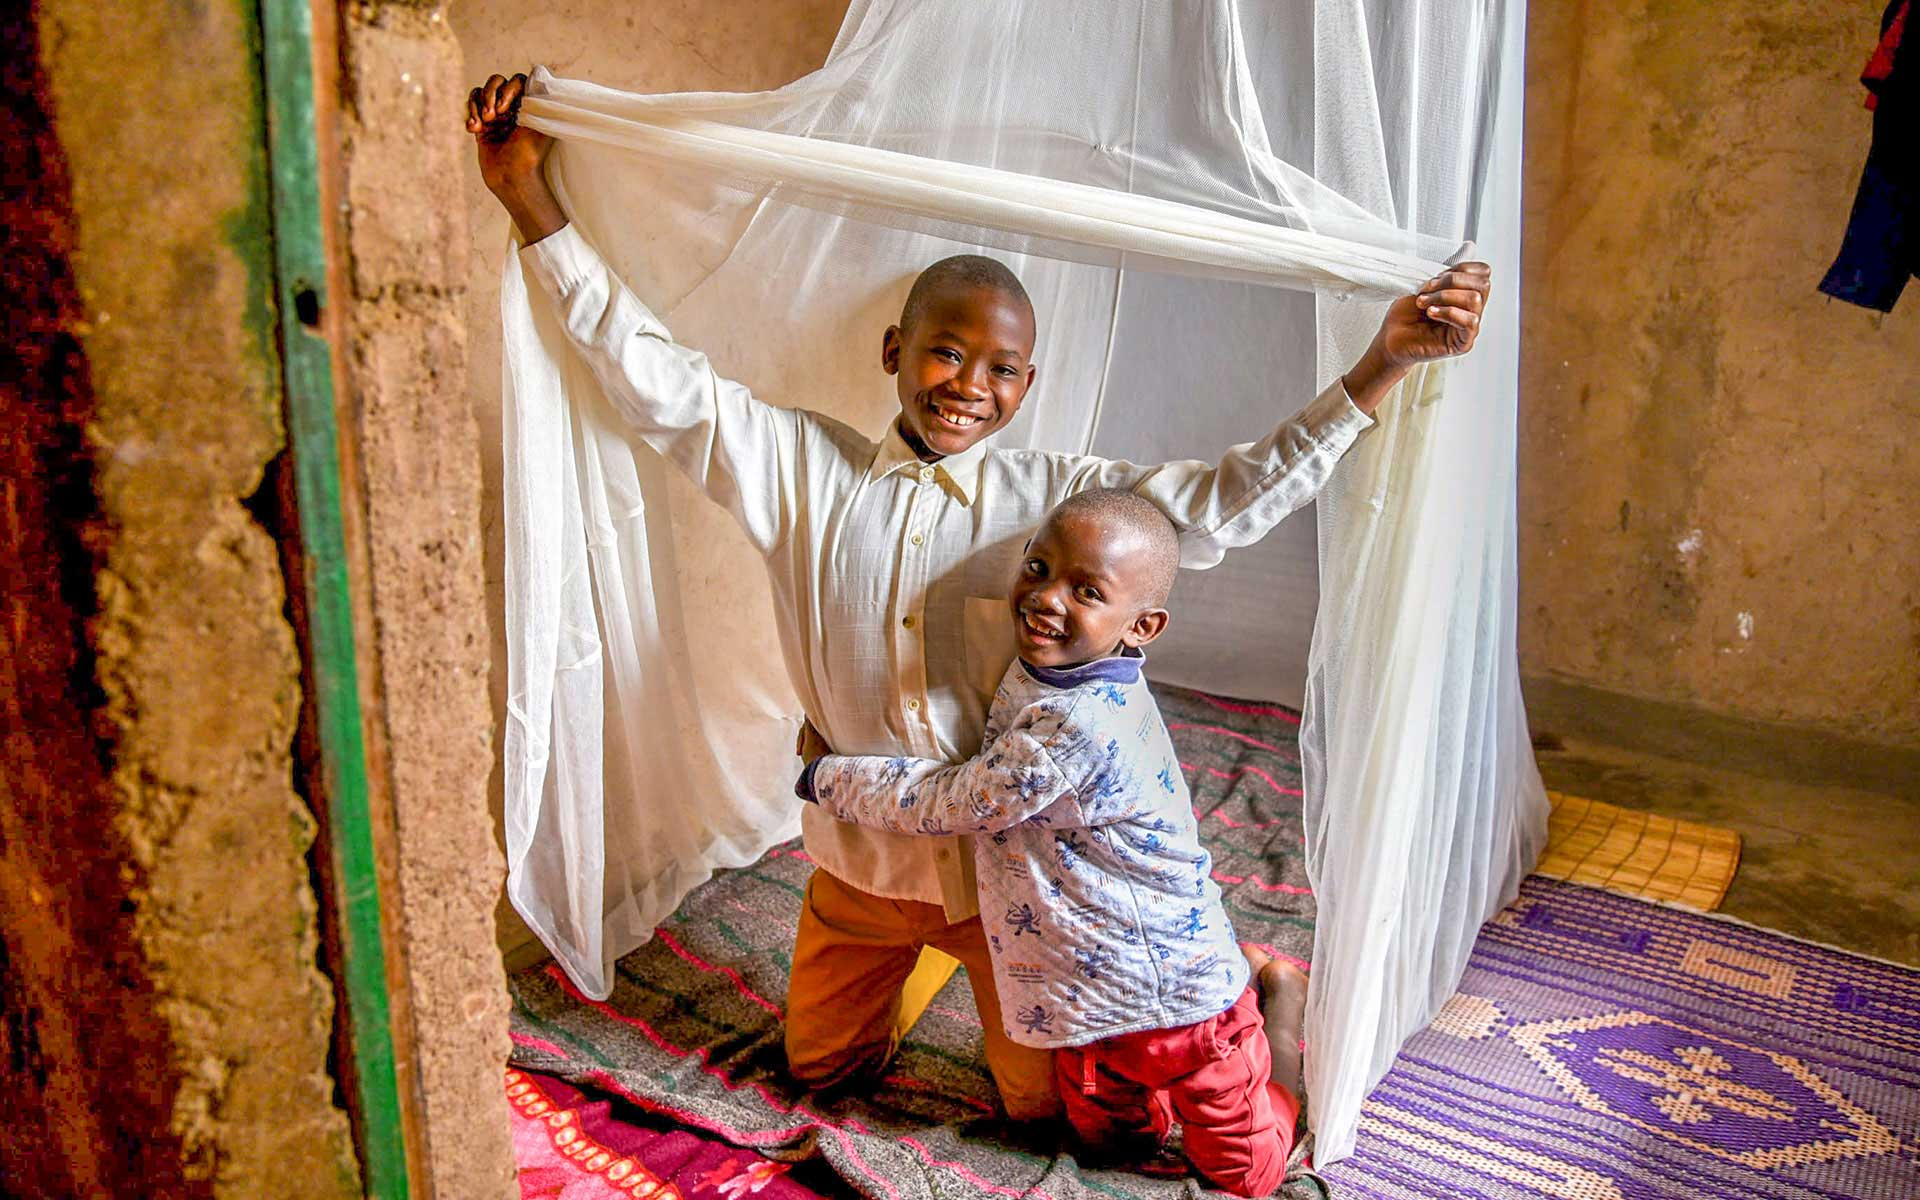 These brothers have been malaria free since sleeping under this tent